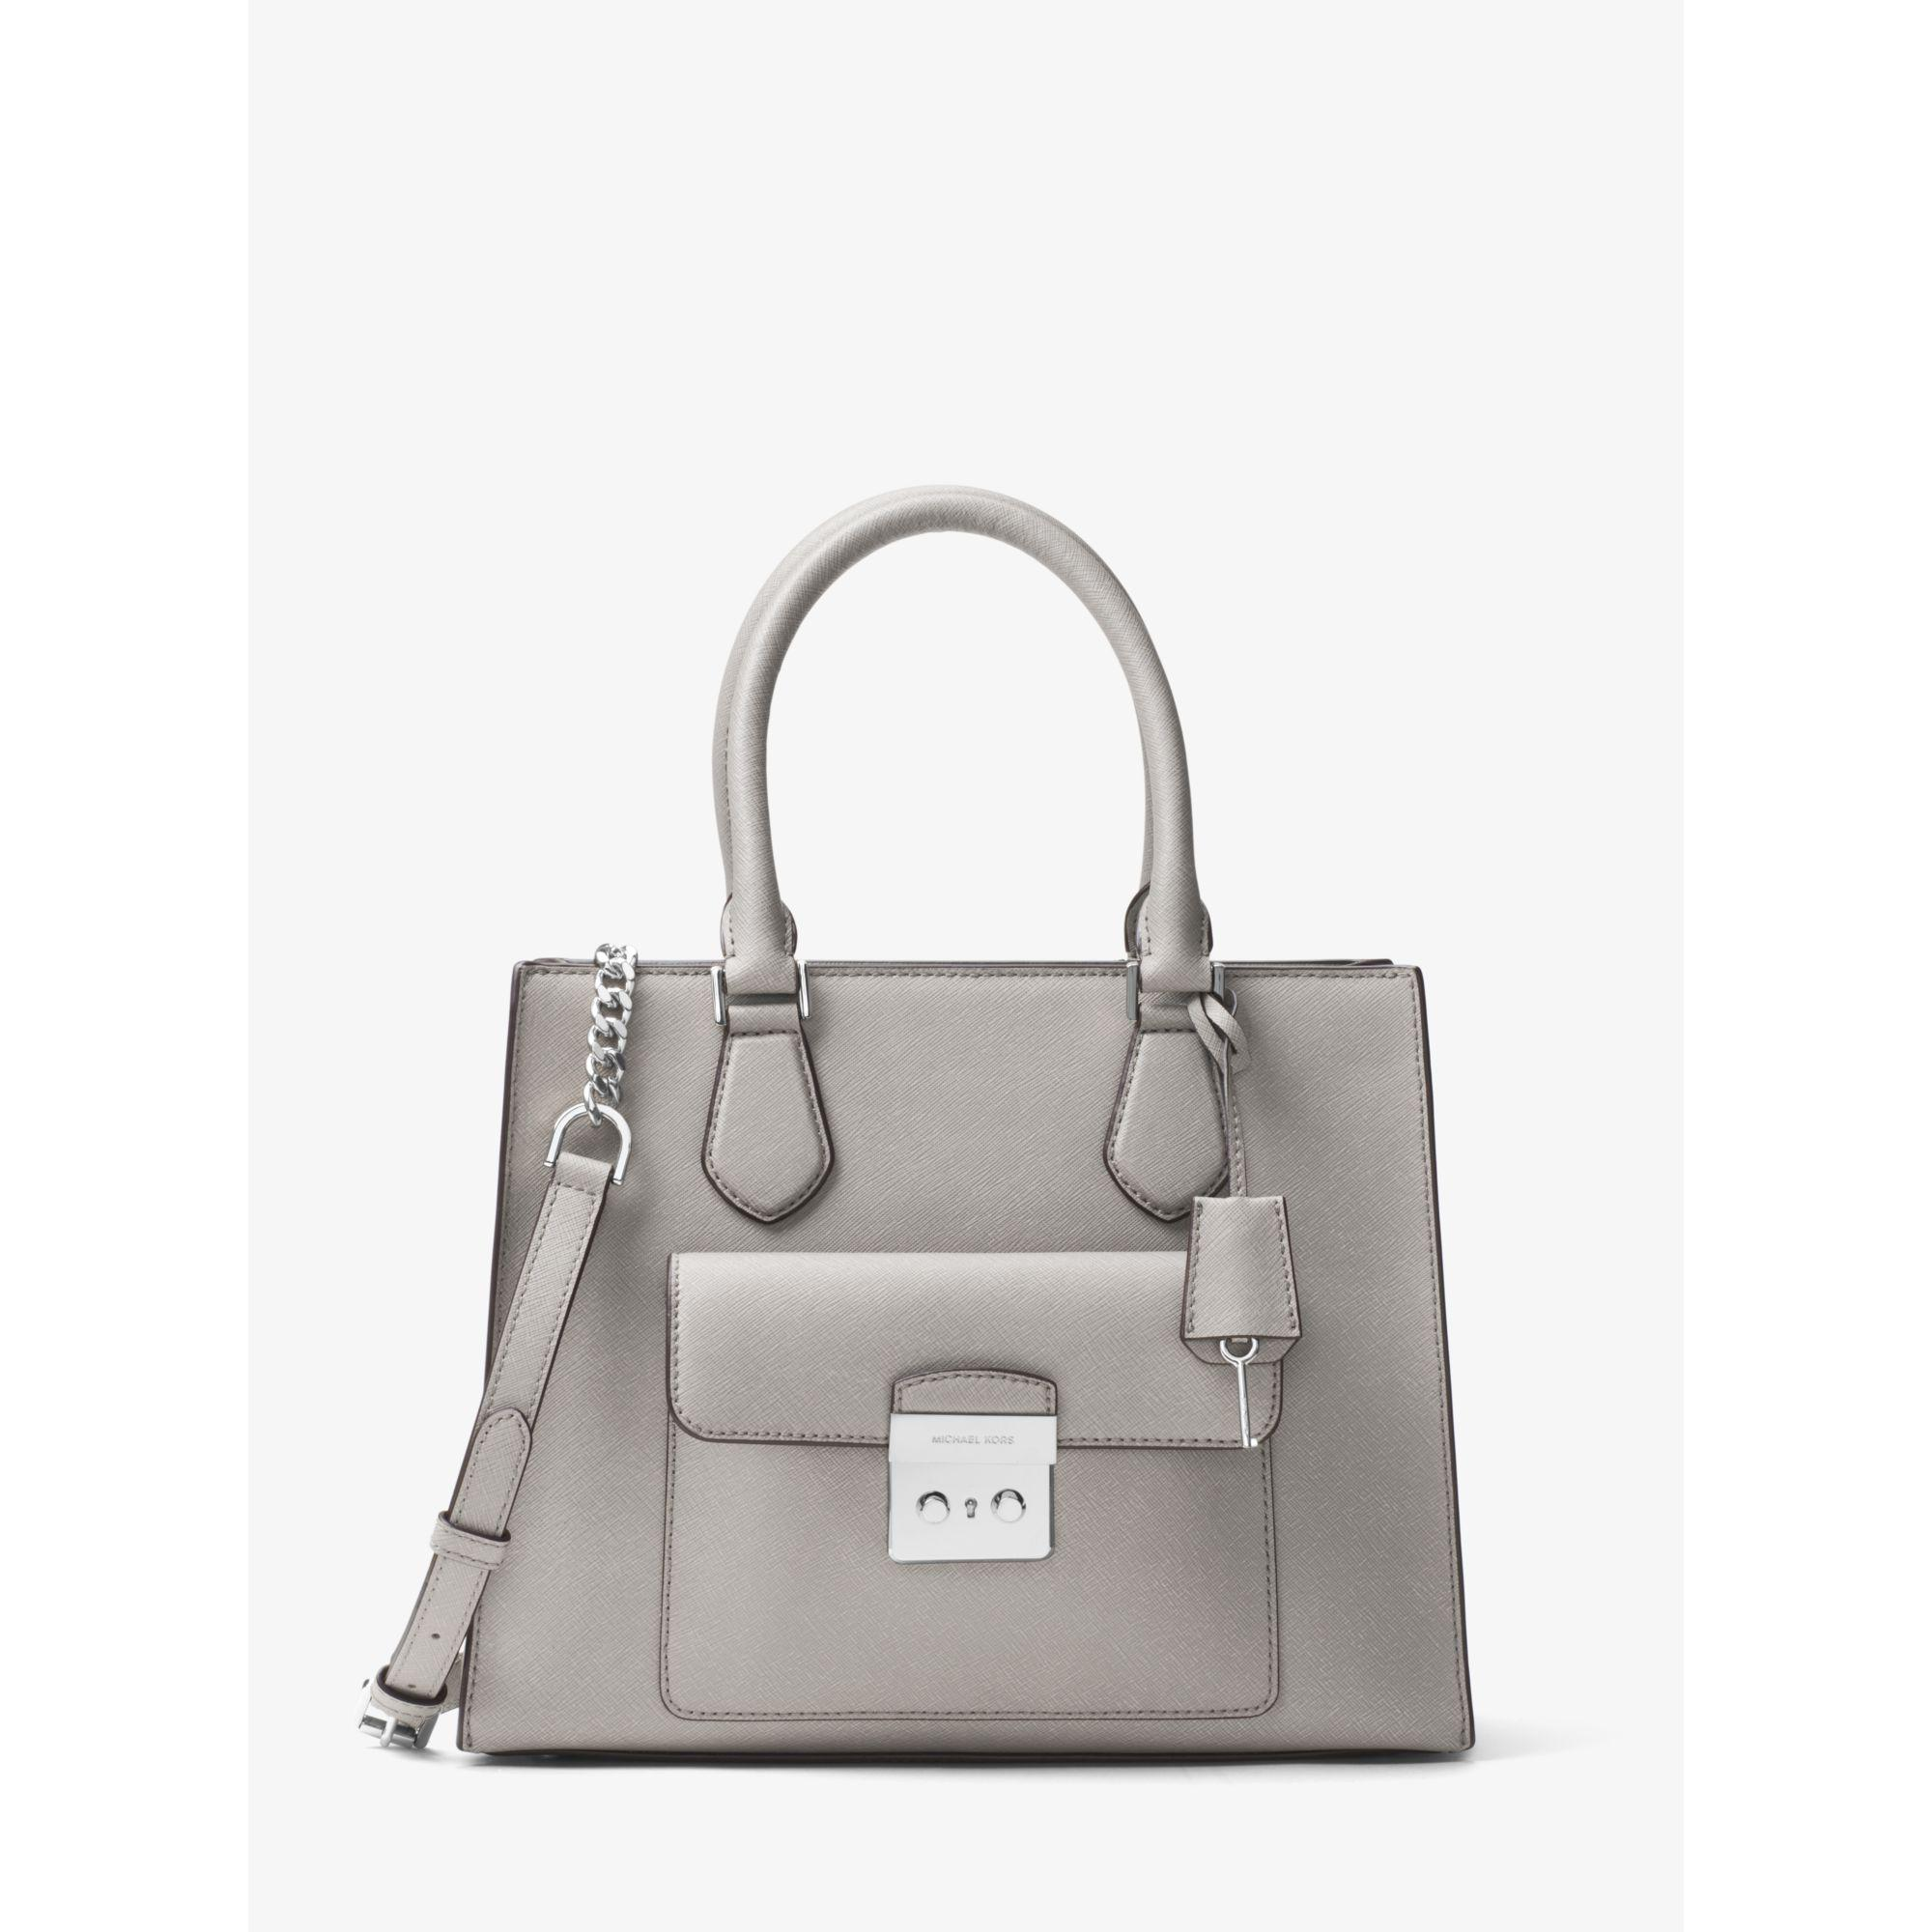 2acee62e46c045 Michael Kors Bridgette Medium Saffiano Leather Tote in Gray - Lyst